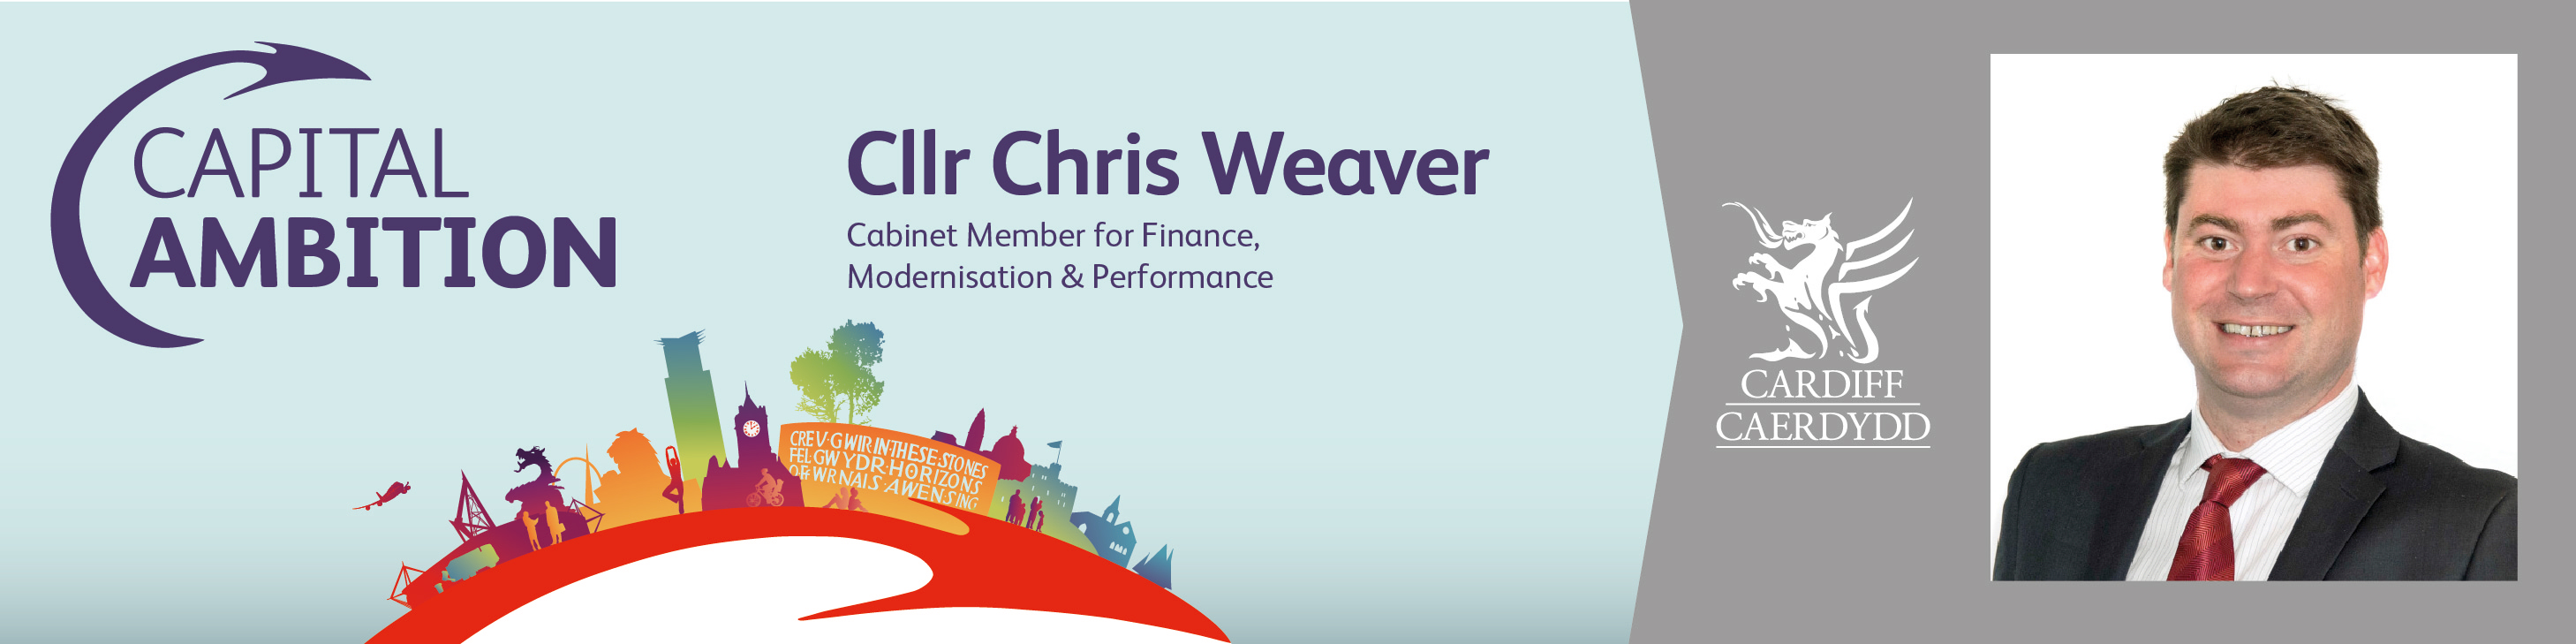 Councillor Chris Weaver